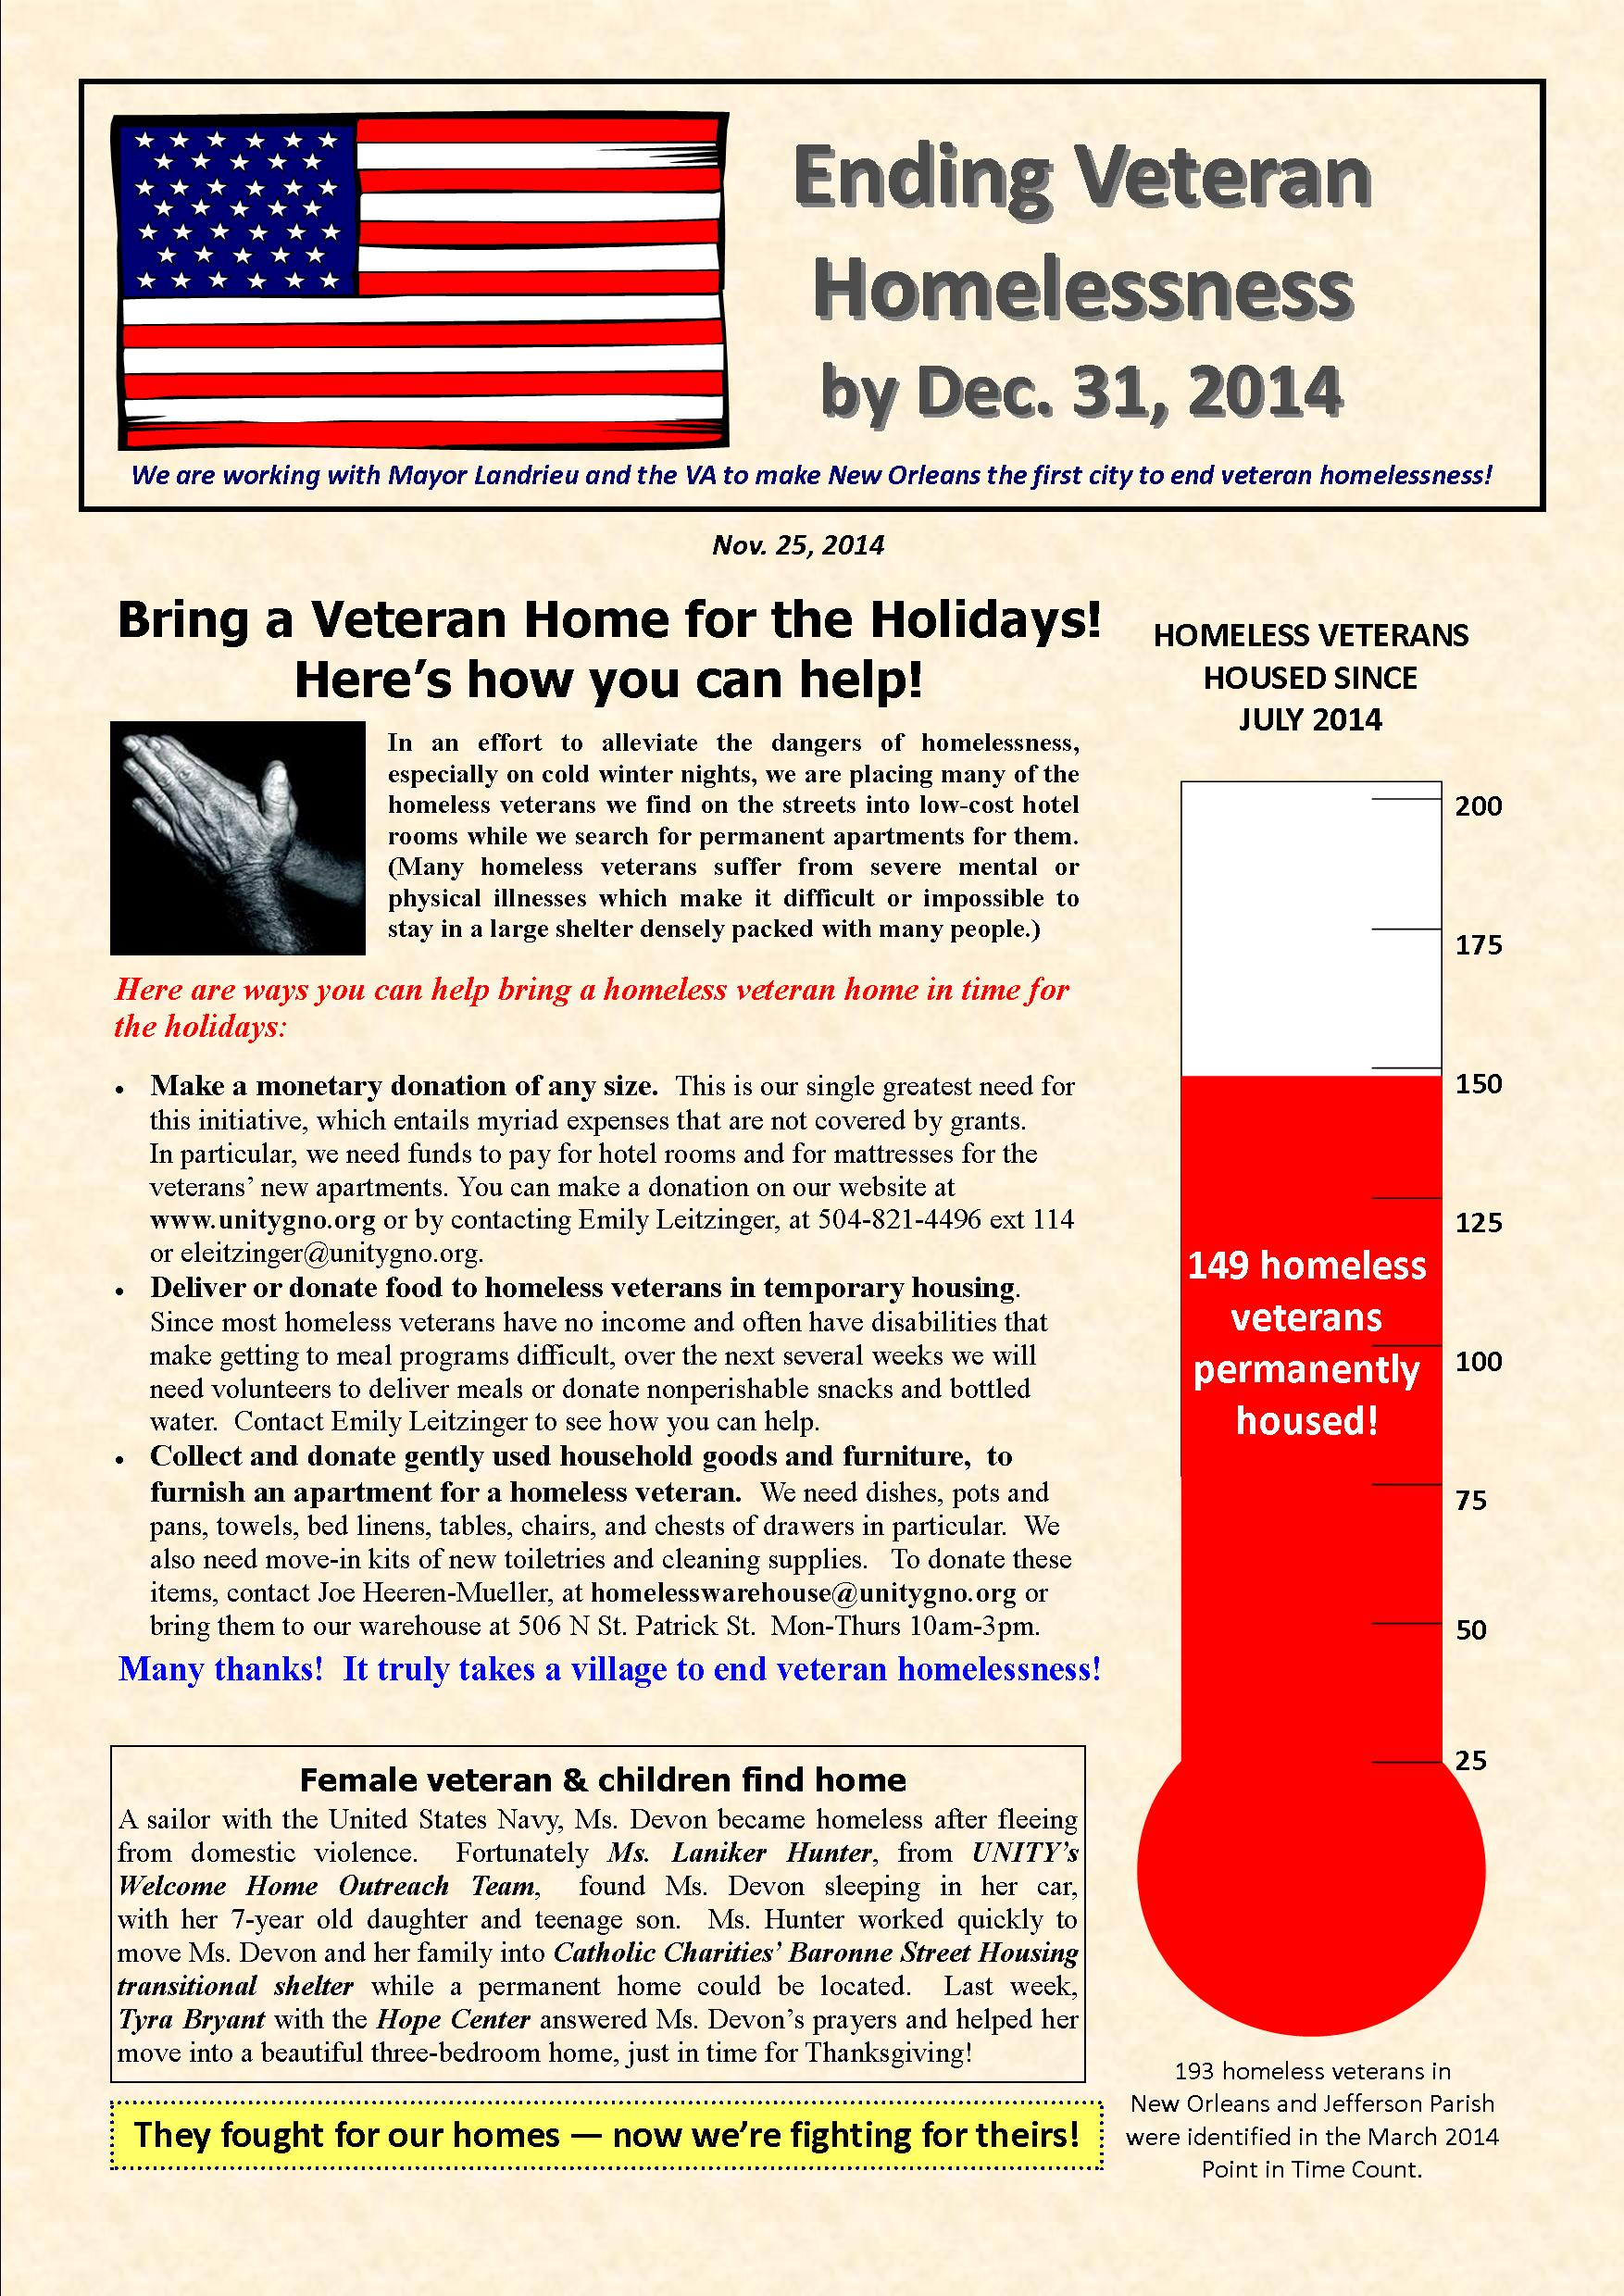 Help New Orleans become the first city in the nation to end veteran homelessness!